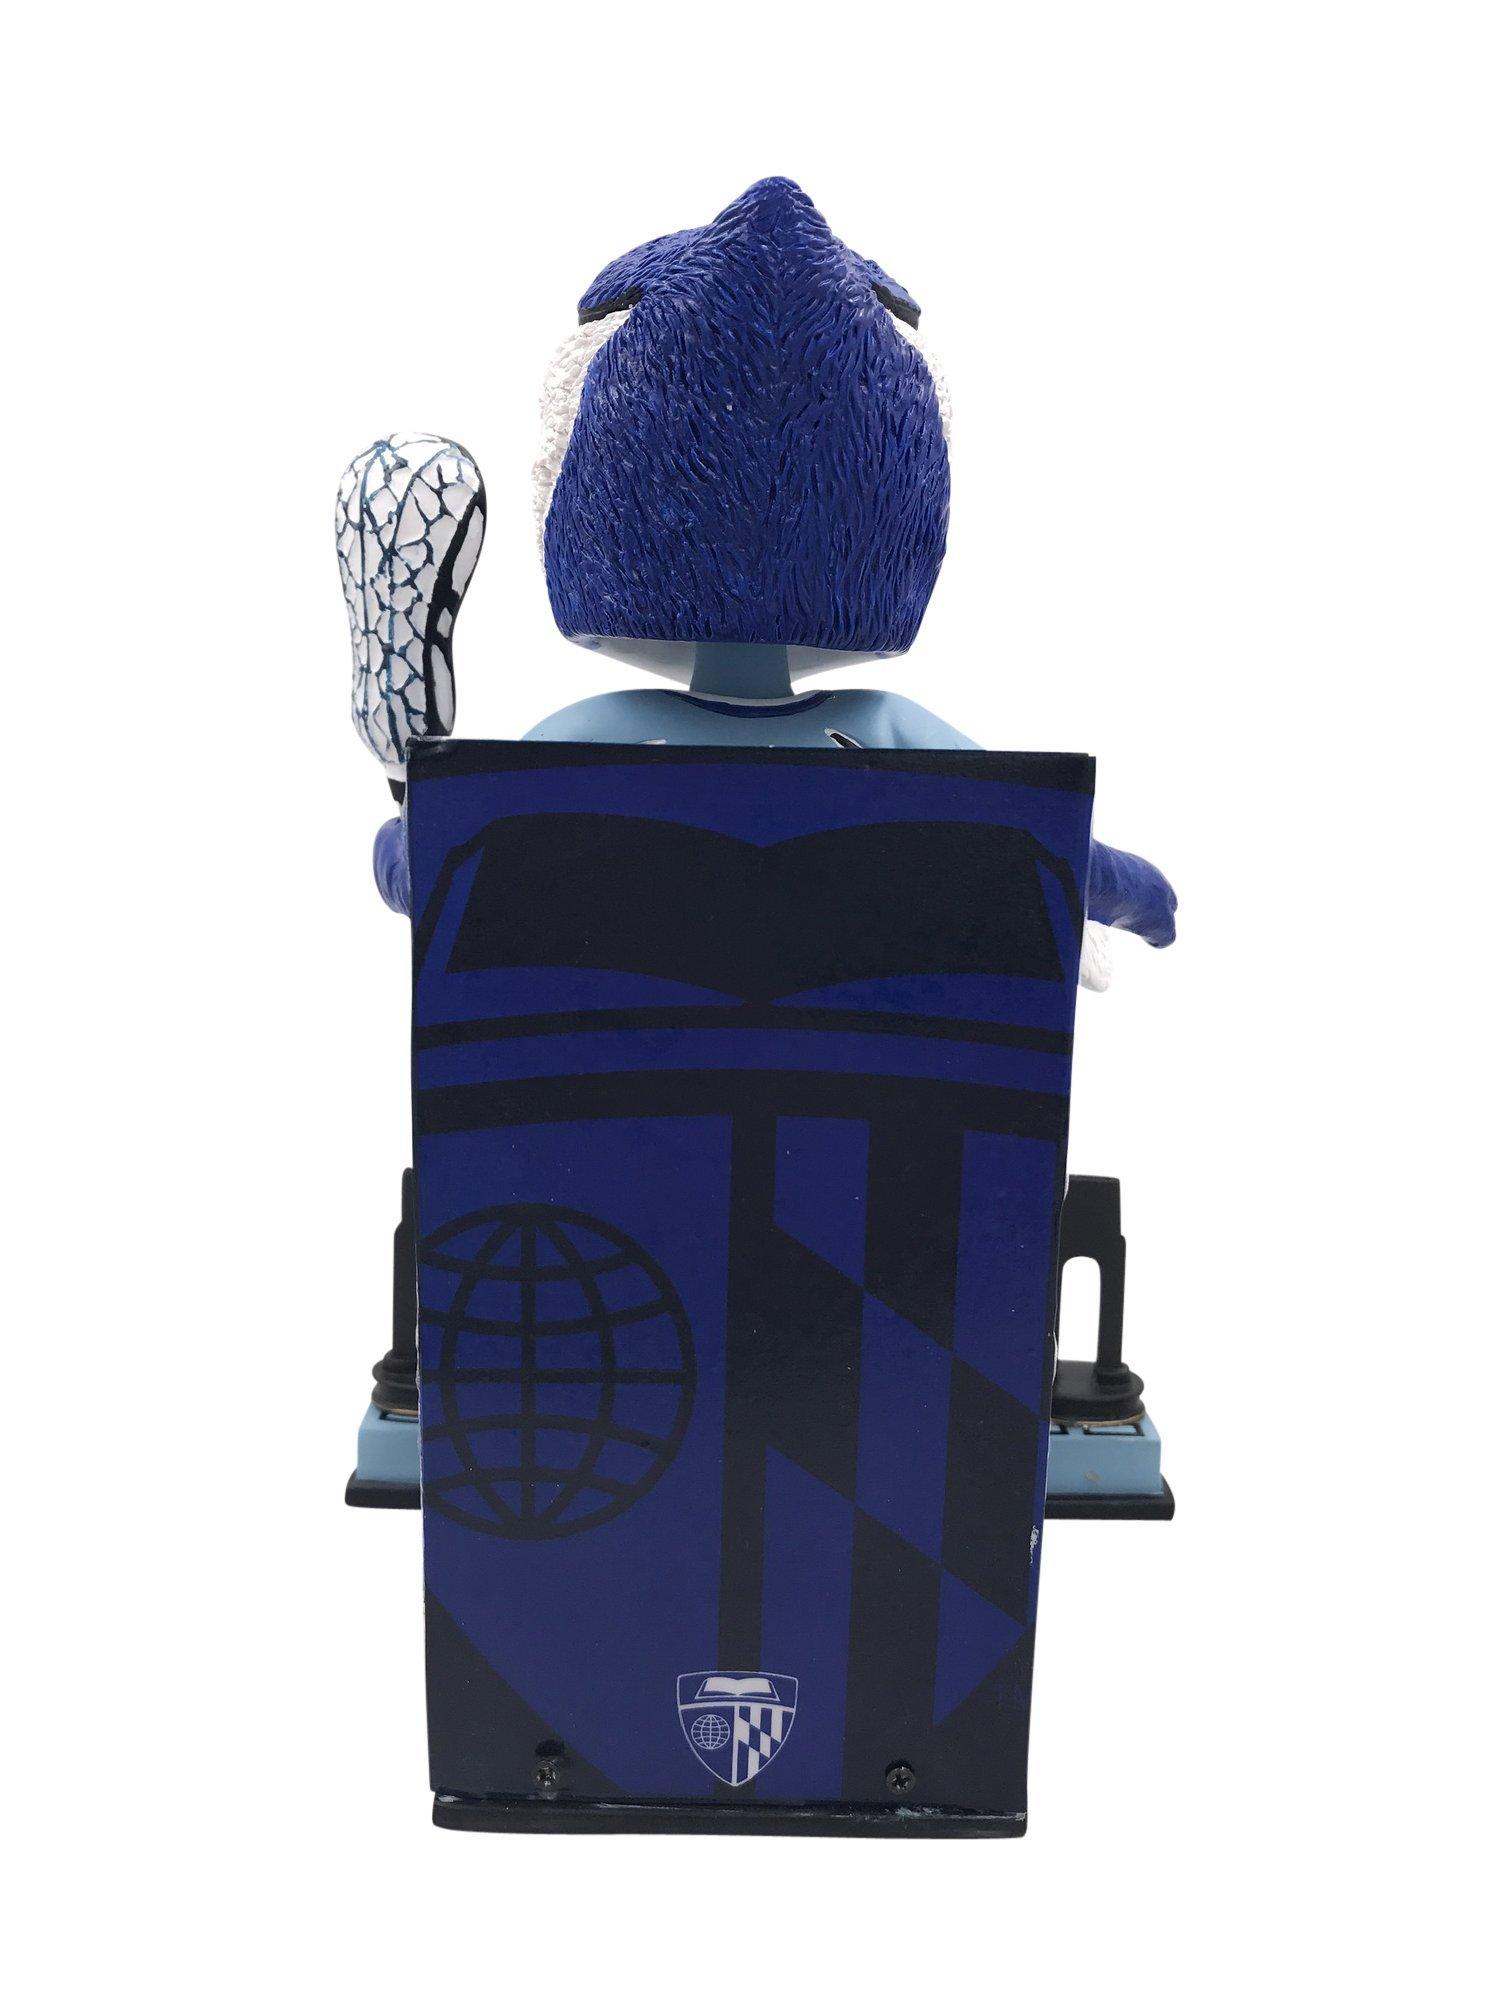 Blue Jay Johns Hopkins University Men's Lacrosse National Champions Bobblehead by Forever Collectibles (Image #4)